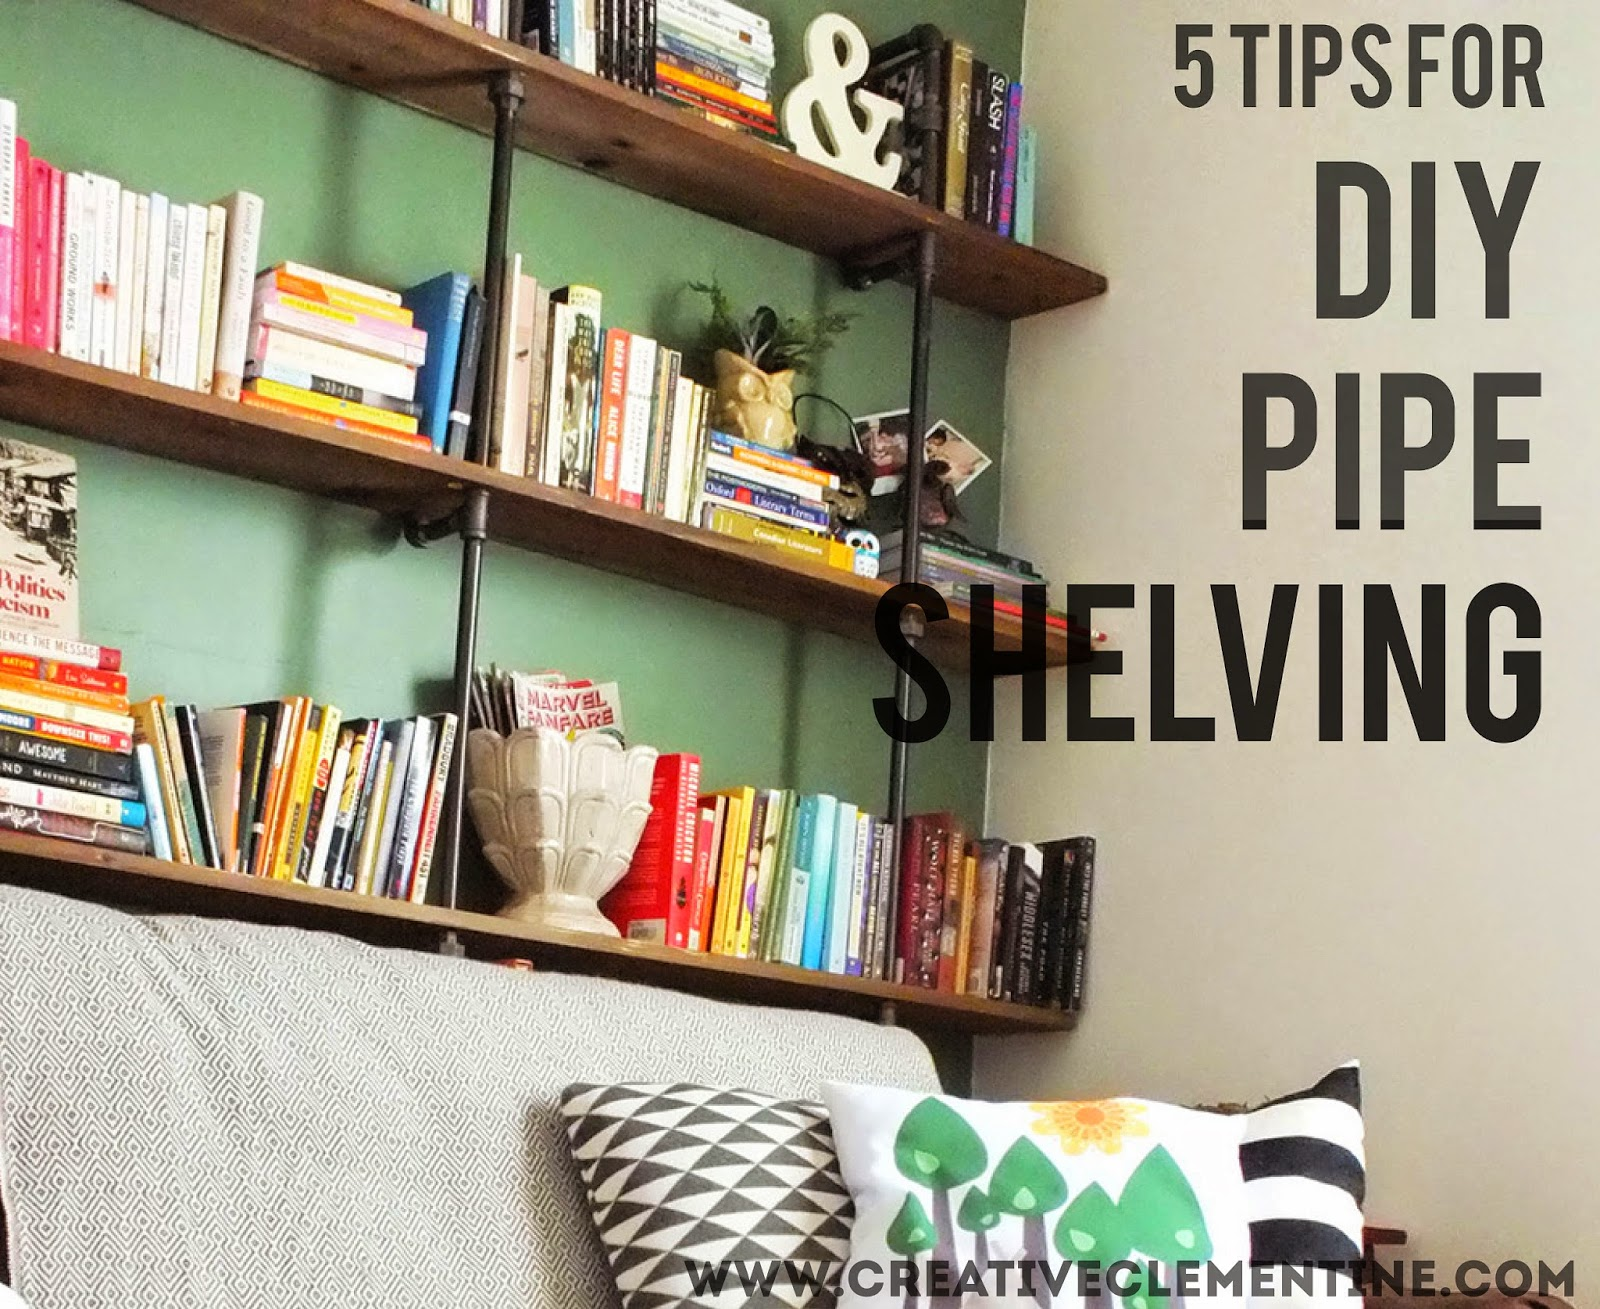 Thinking about making DIY pipe shelving? Read these five tips and lessons learned from www.CreativeClementine.com first!